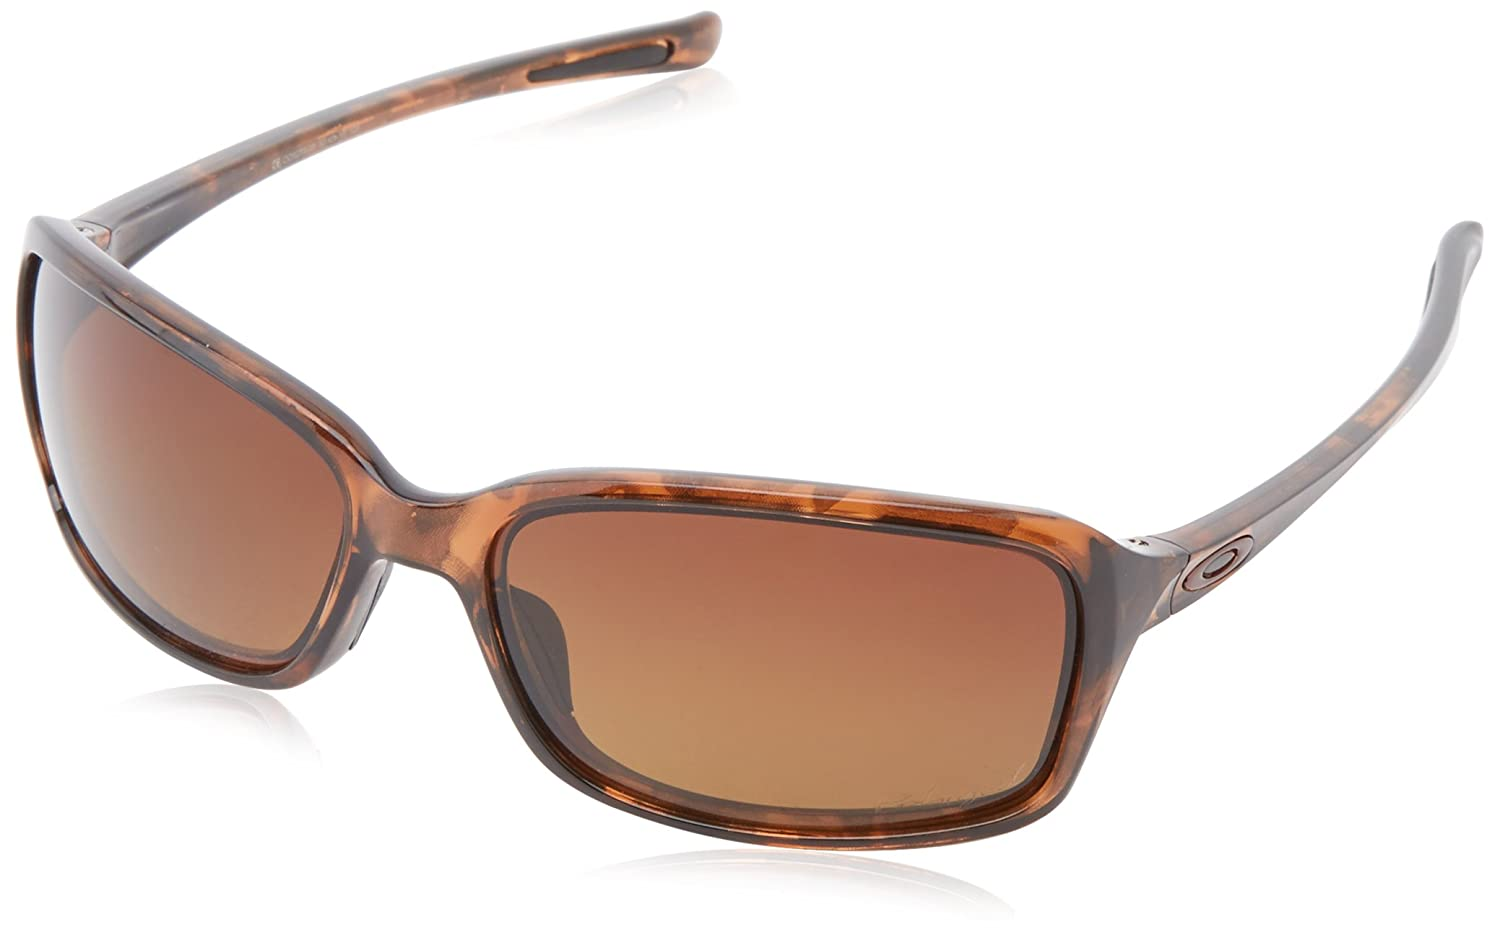 Oakley - Gafas de sol Rectangulares Dispute para mujer, brown